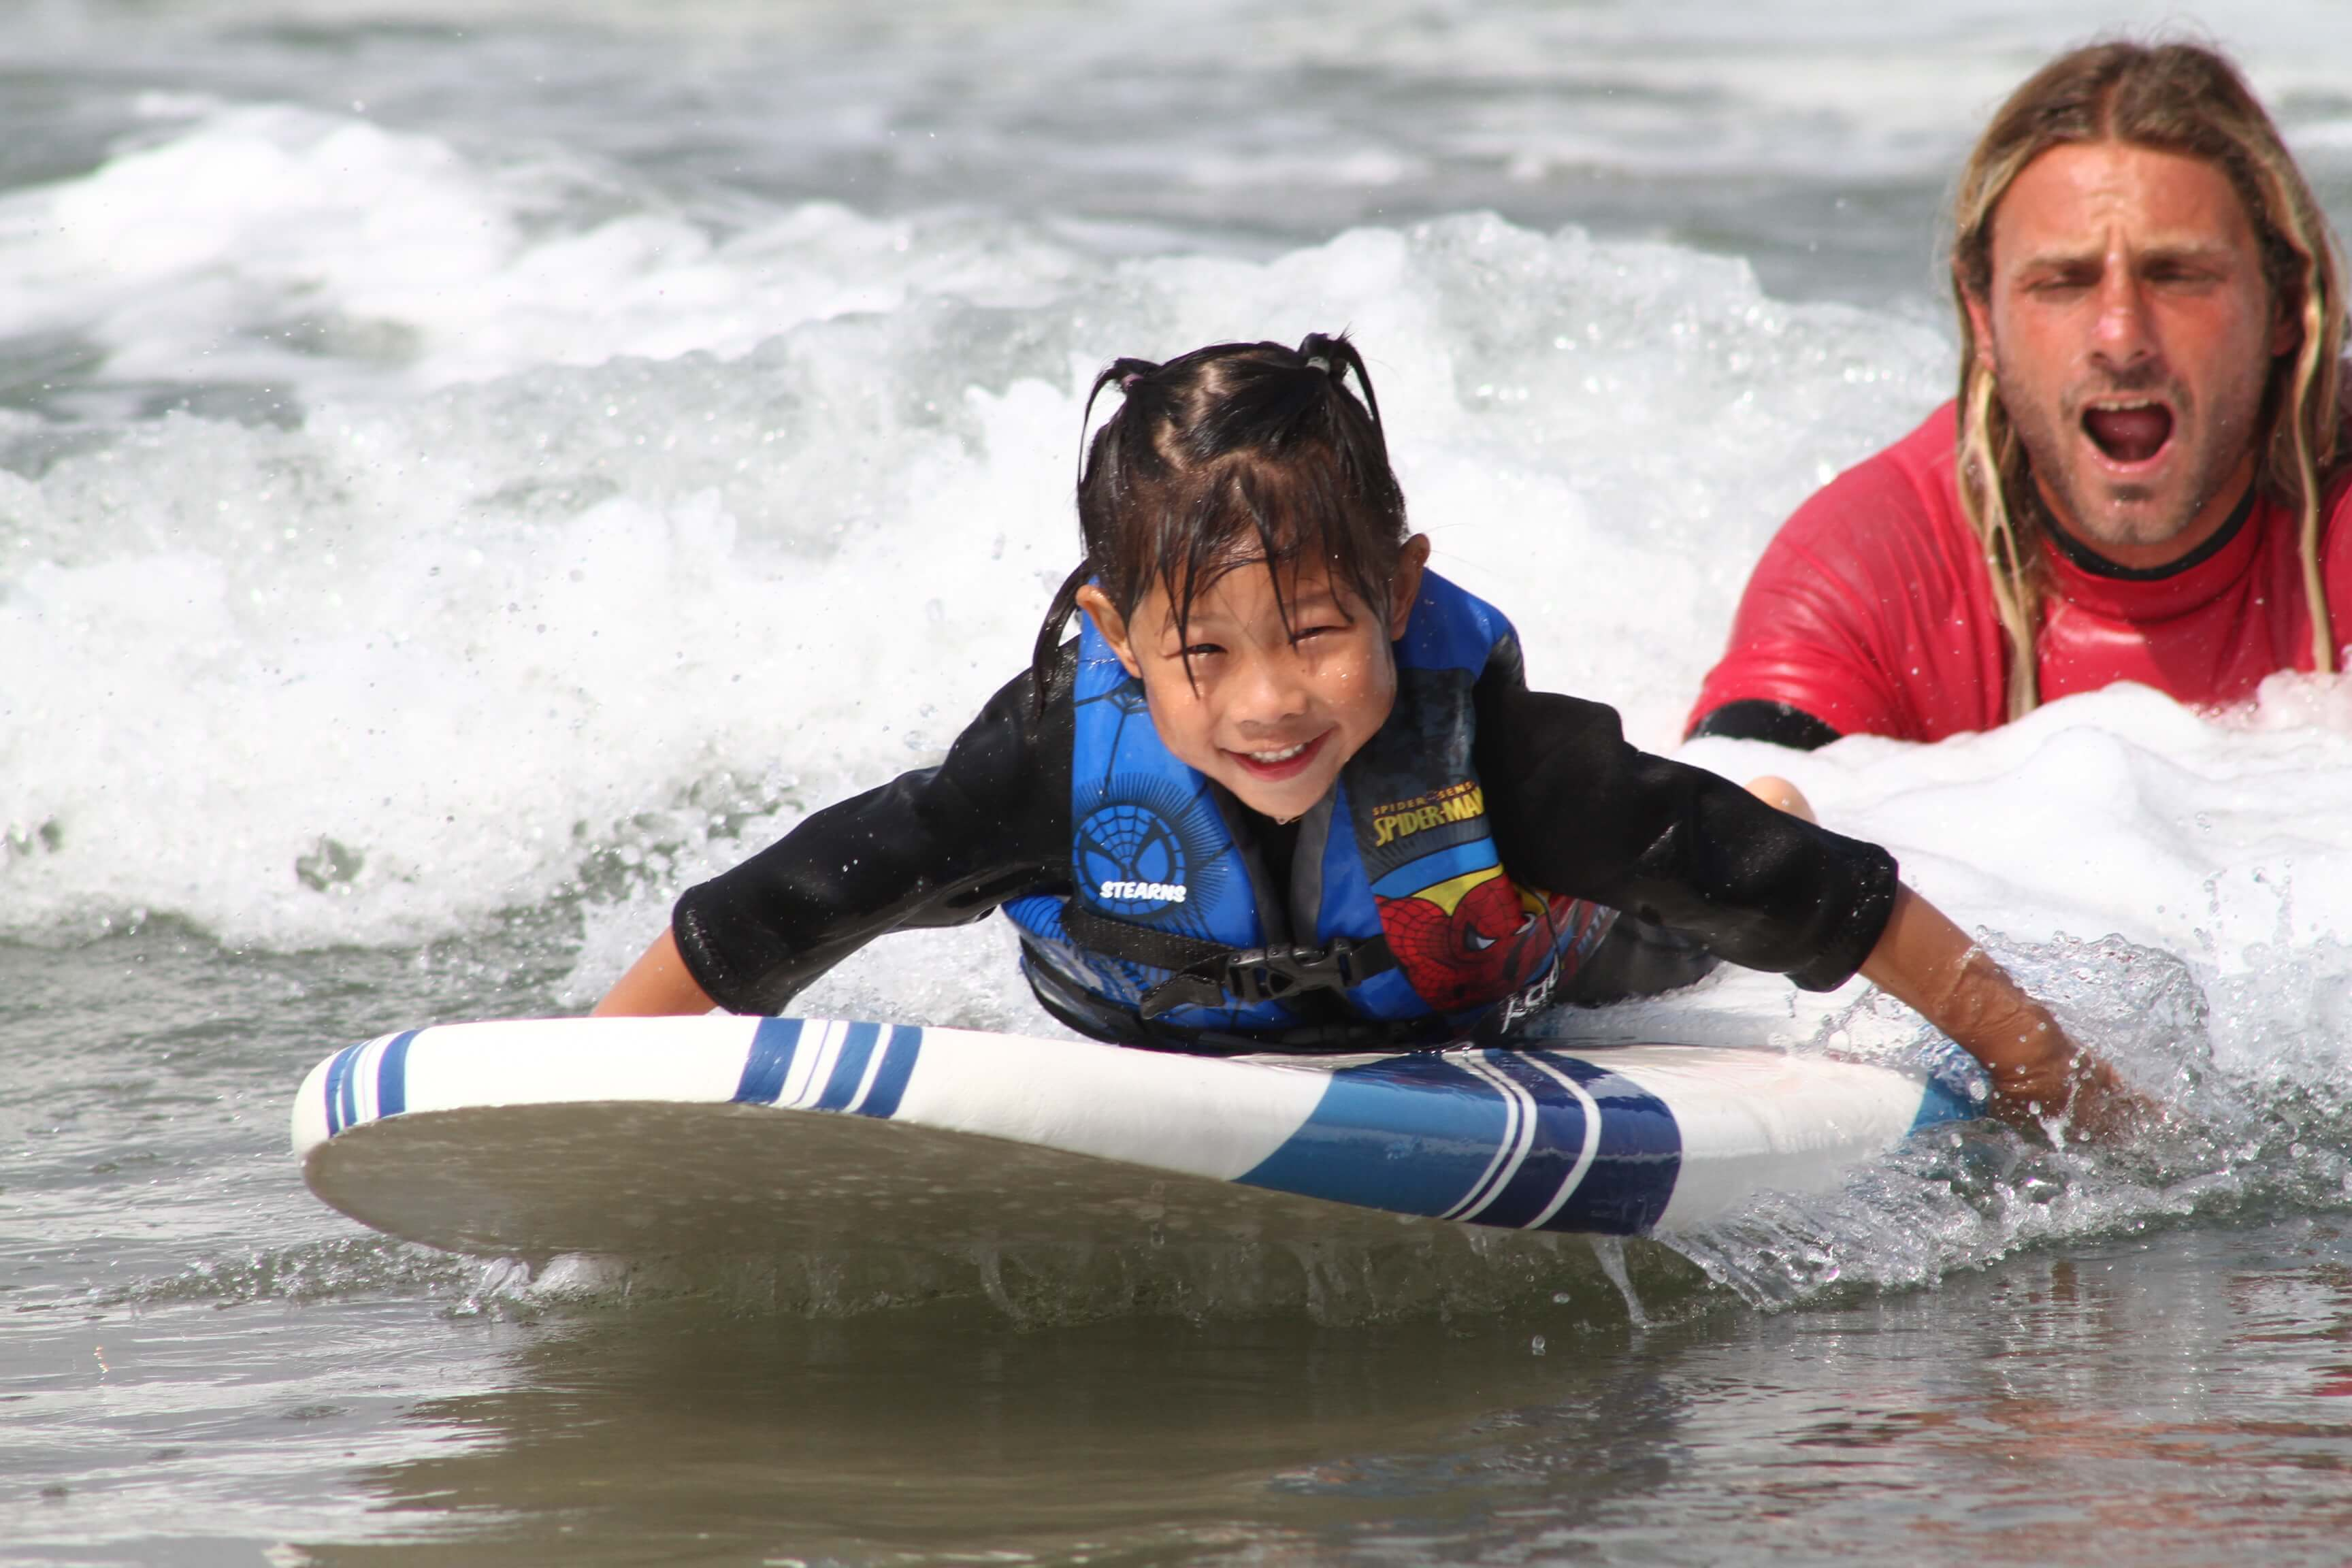 NOW YOUR FAMILY CAN LEARN TO SURF!